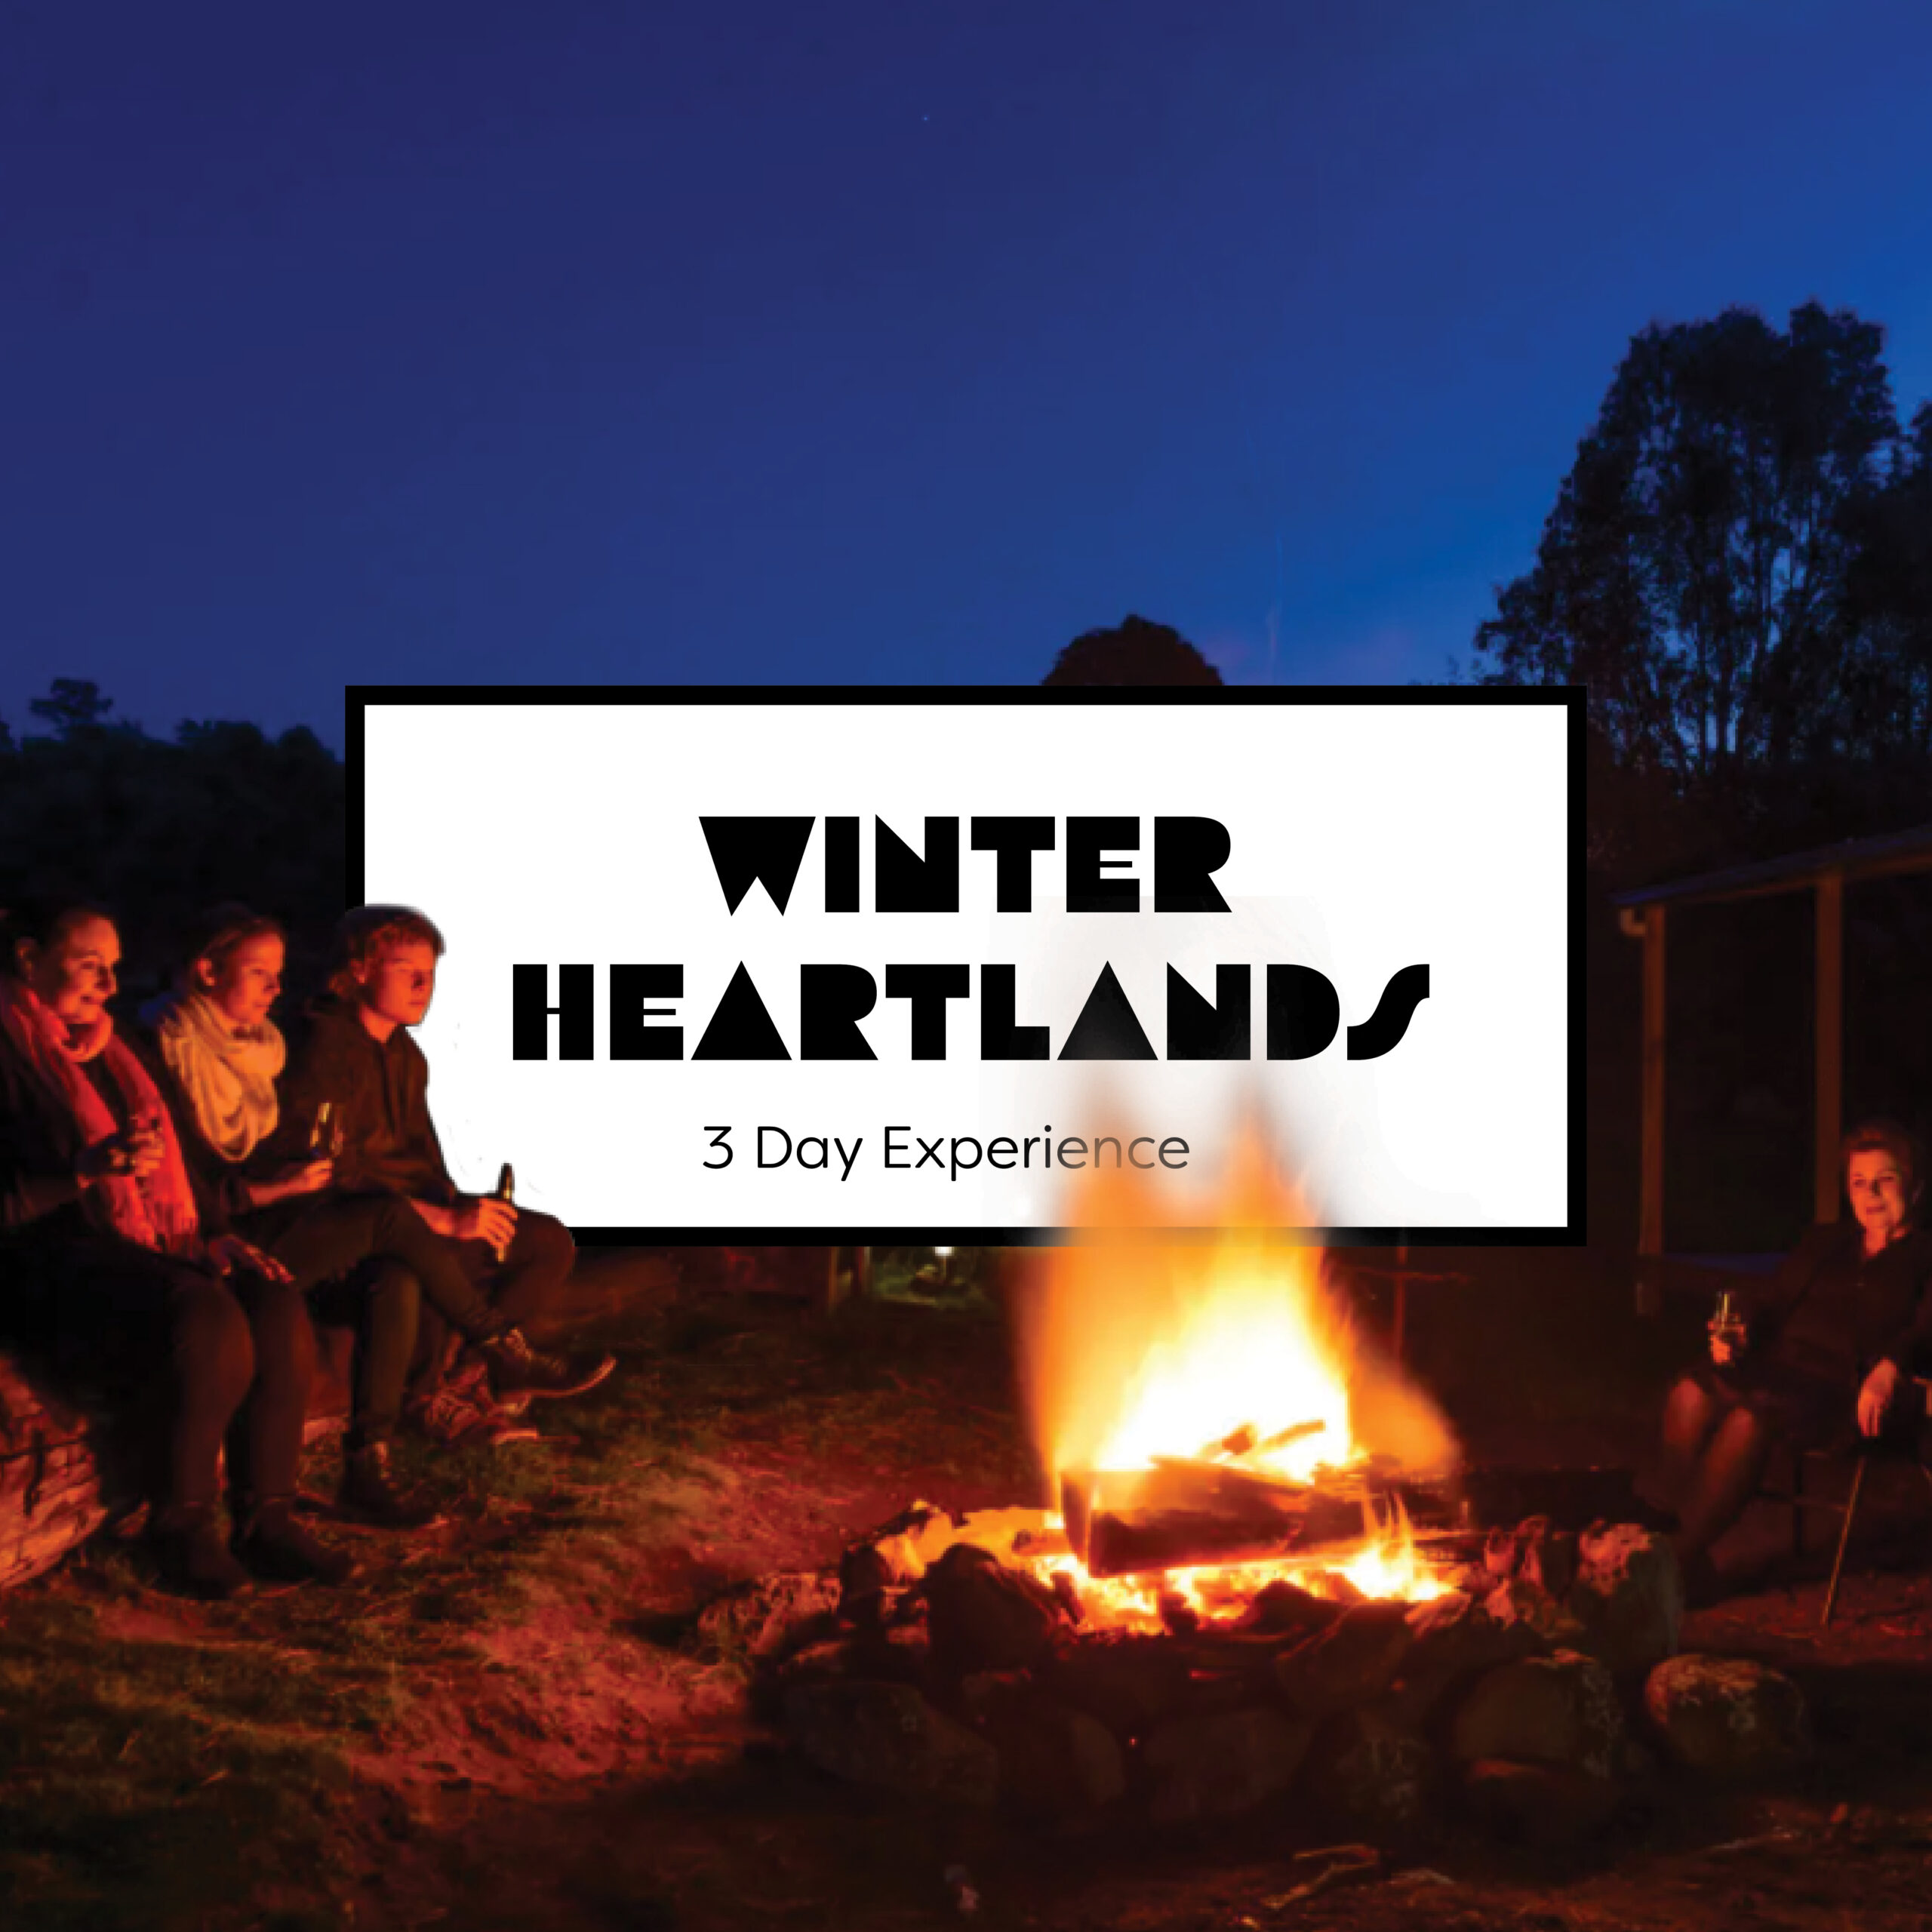 Winter Heartlands Experience